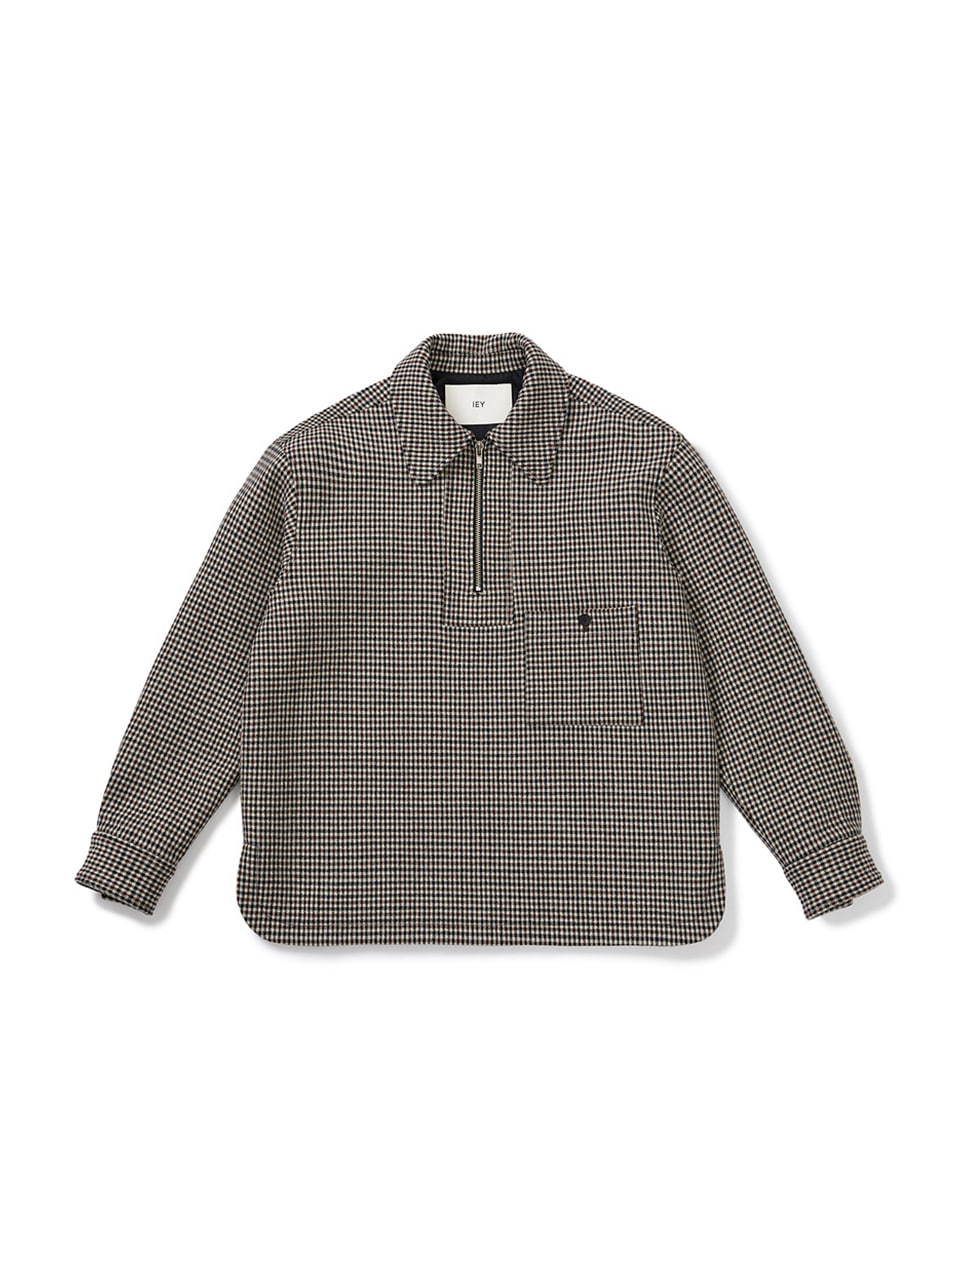 [FW20] HALF ZIP-UP OVER SHIRTS(Dark Beige) IEY [FW20] HALF ZIP-UP OVER SHIRTS(Dark Beige)